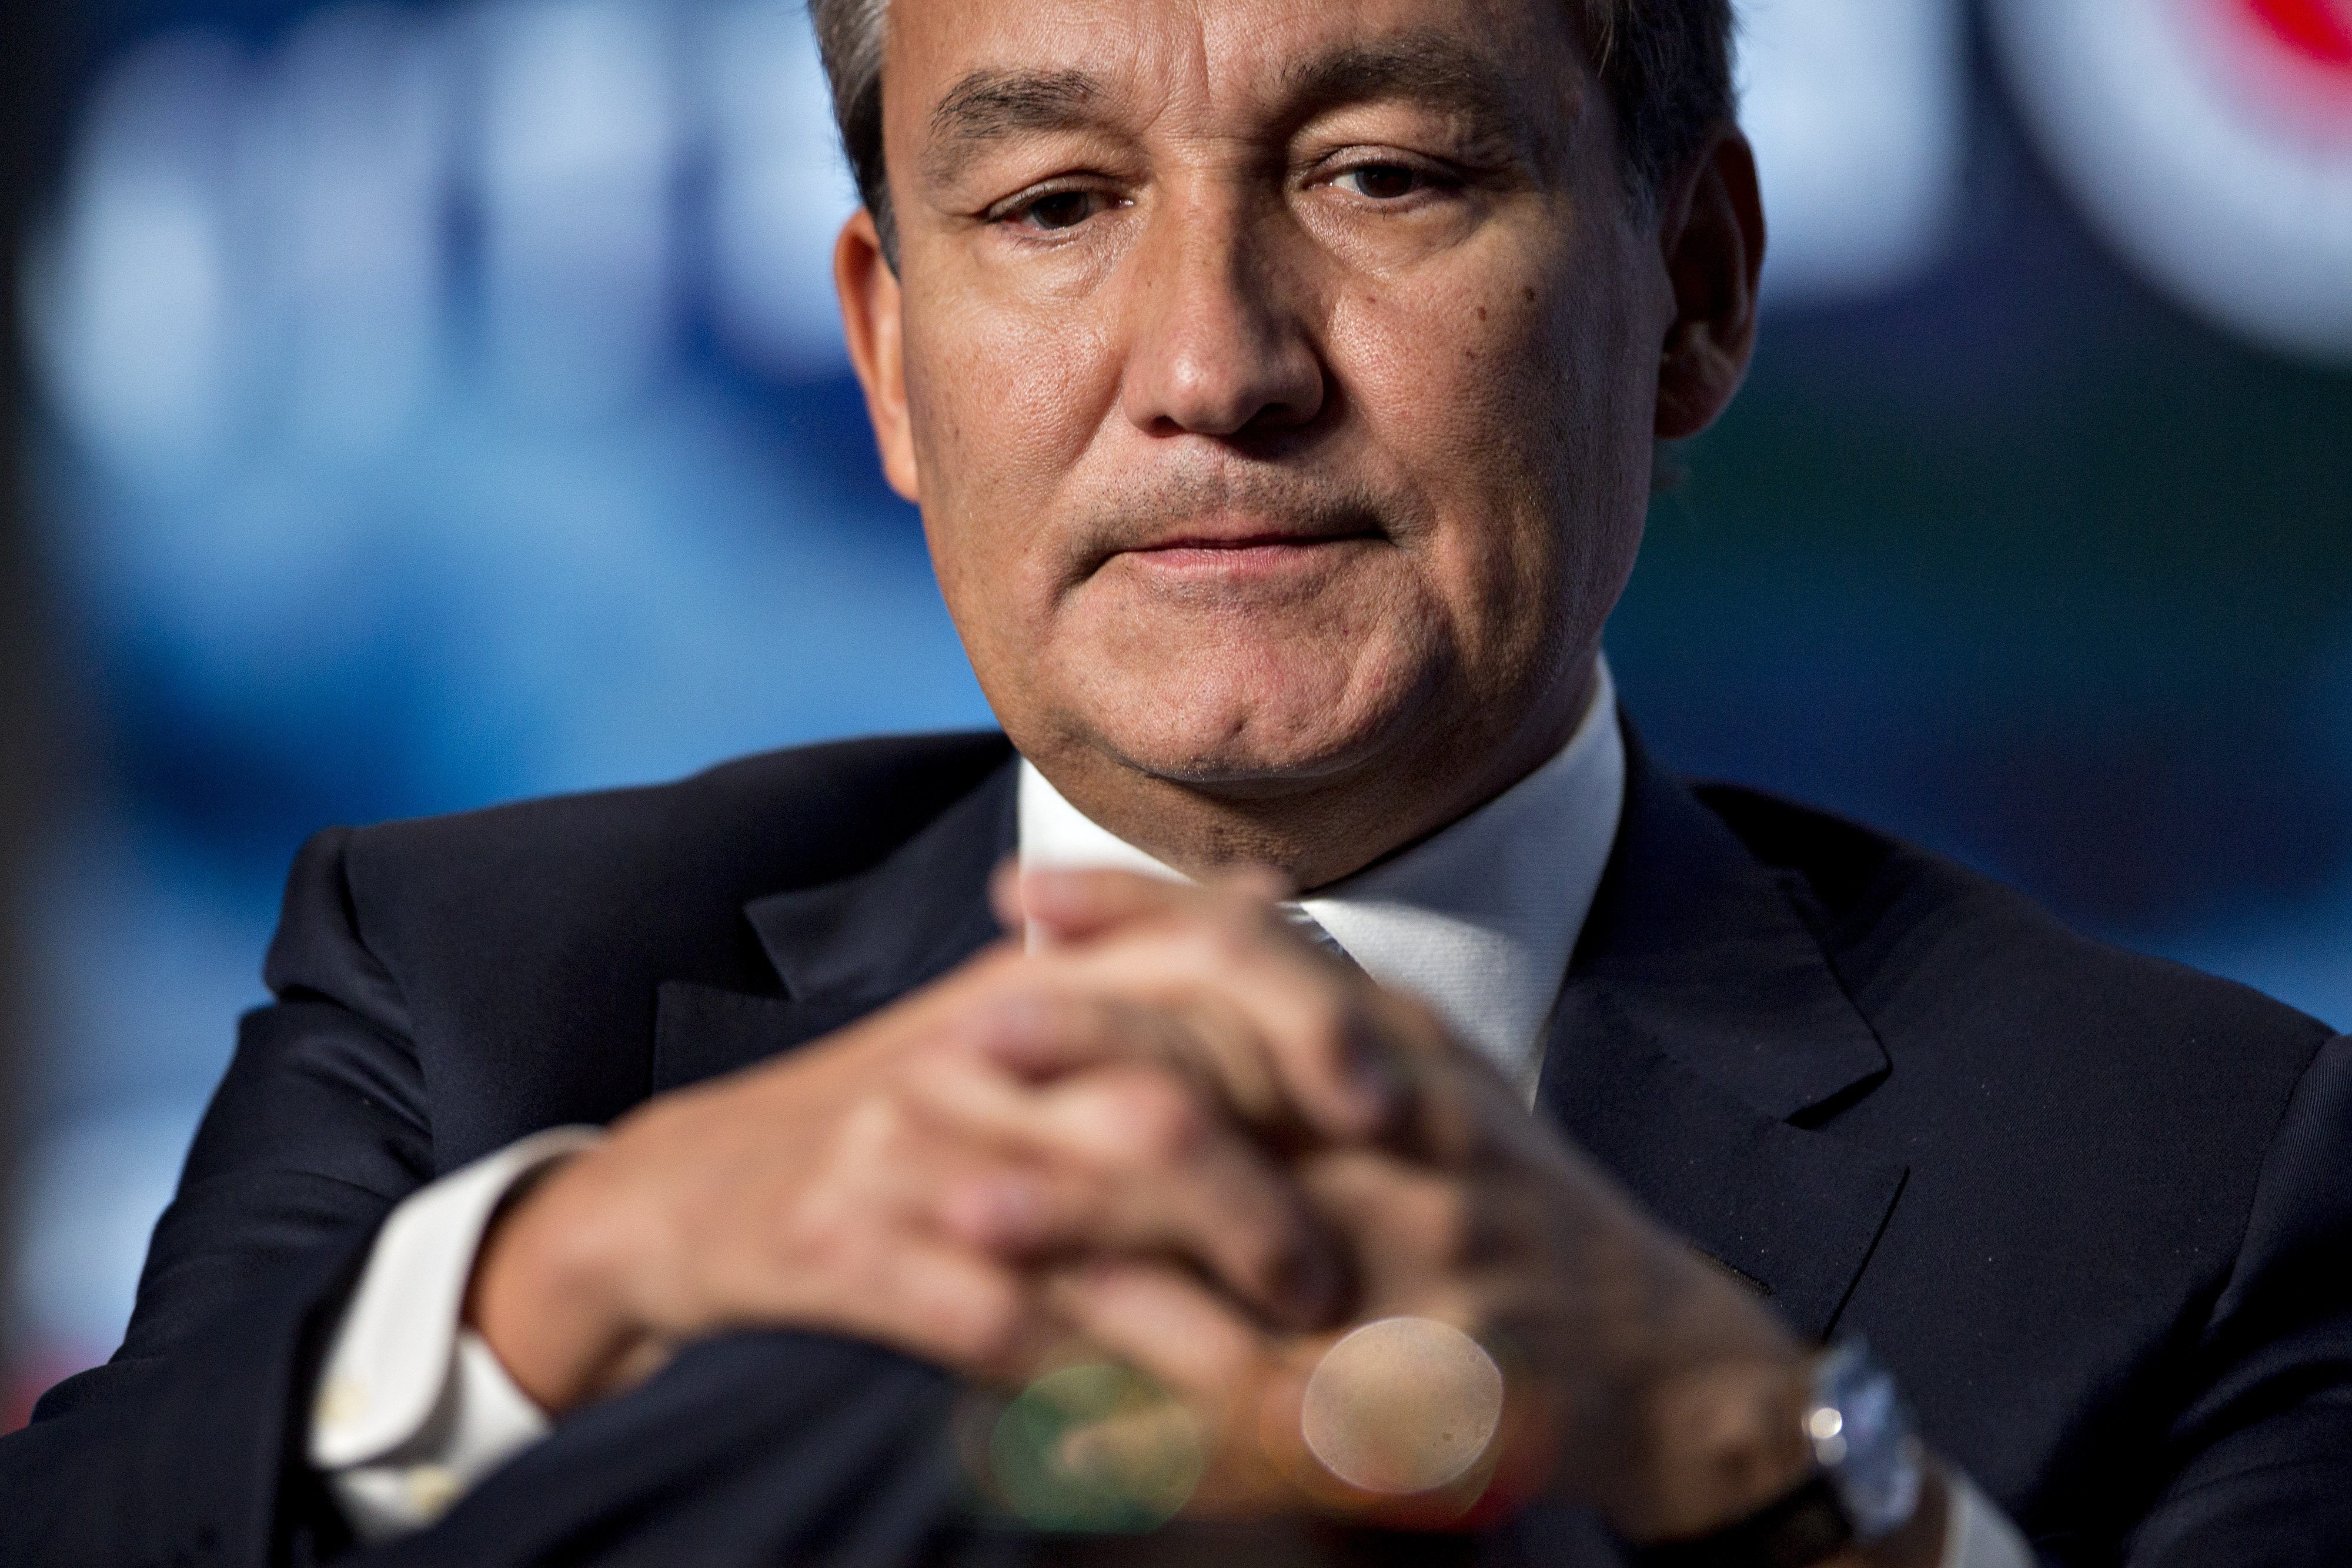 Oscar Munoz, chief executive officer of United Continental Holdings Inc., listens during a discussion at the U.S. Chamber of Commerce aviation summit in Washington, D.C., on March 2, 2017.